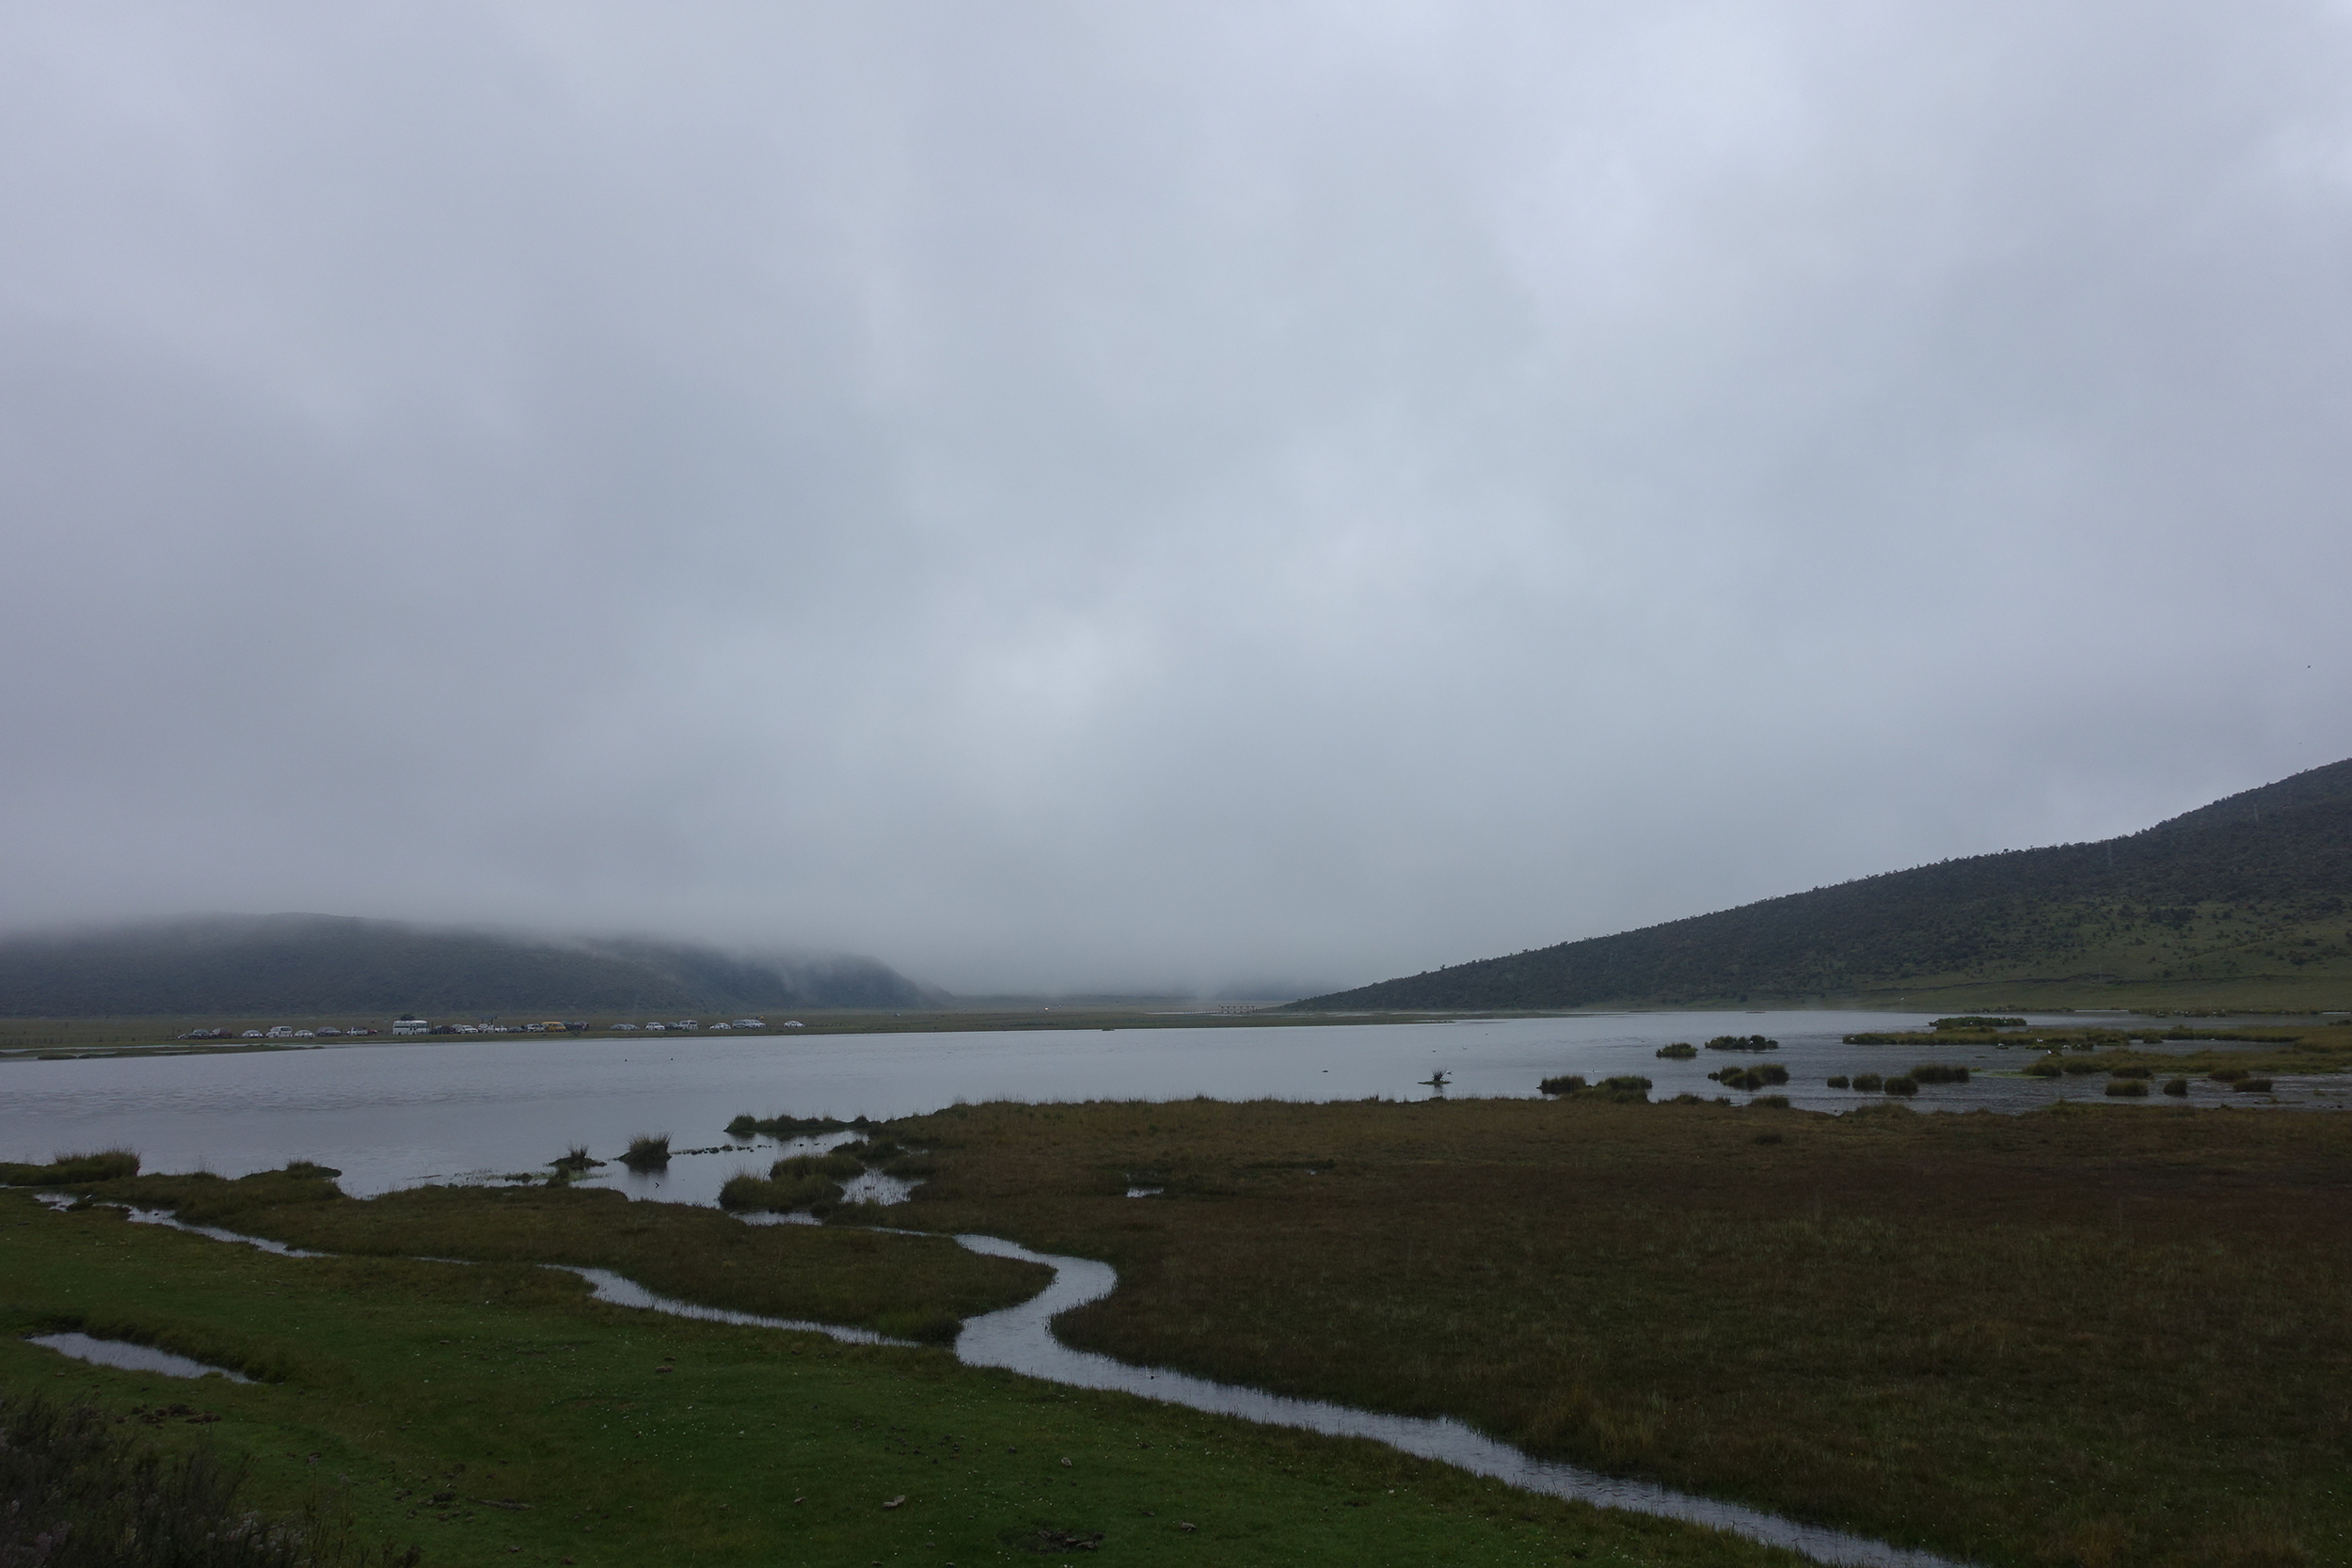 limpiopungo lake. COTOPAXI is hiding in the clouds on the left - take our word for it.